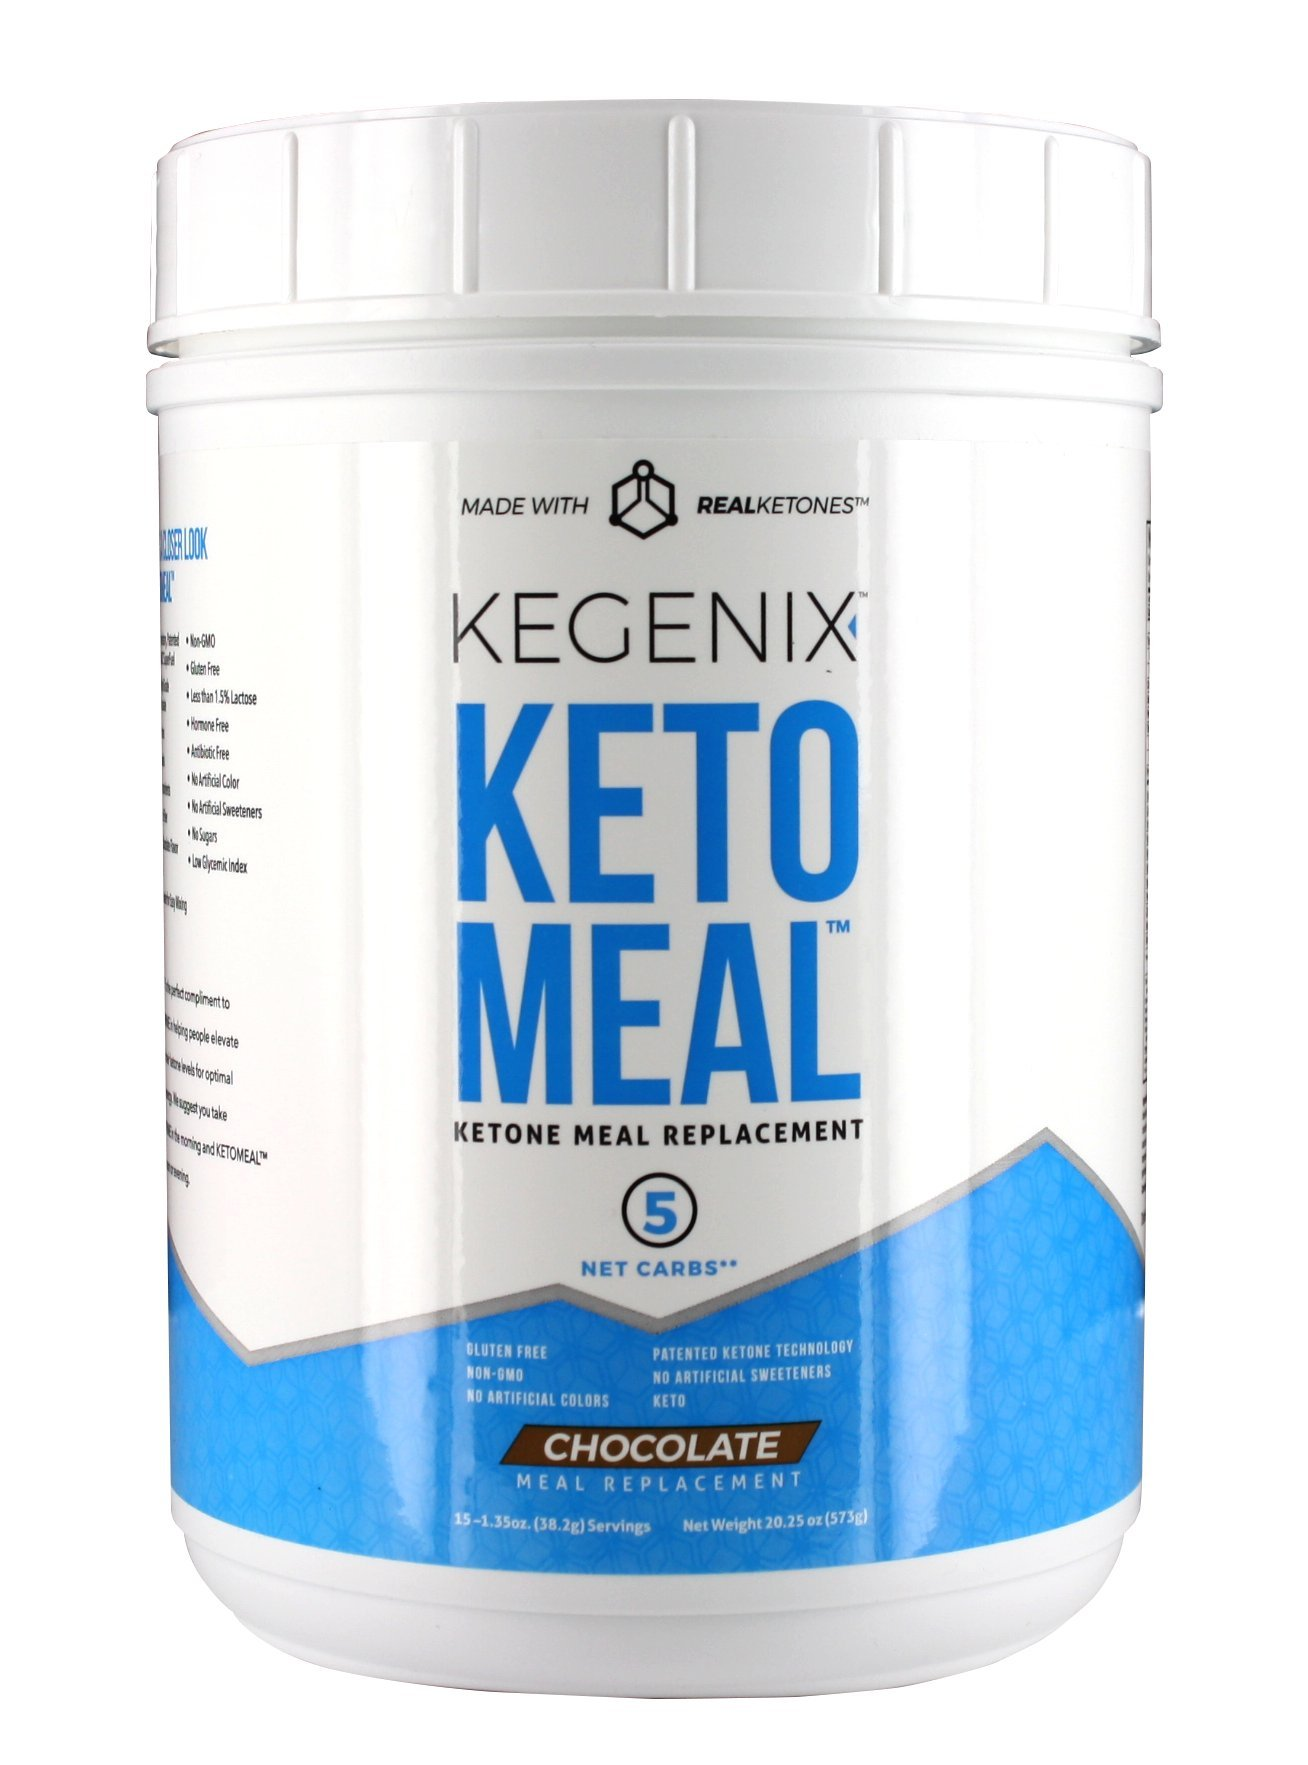 Keto meal replacement with BHB, MCT, and Protein. Energetic weight loss Chocolate